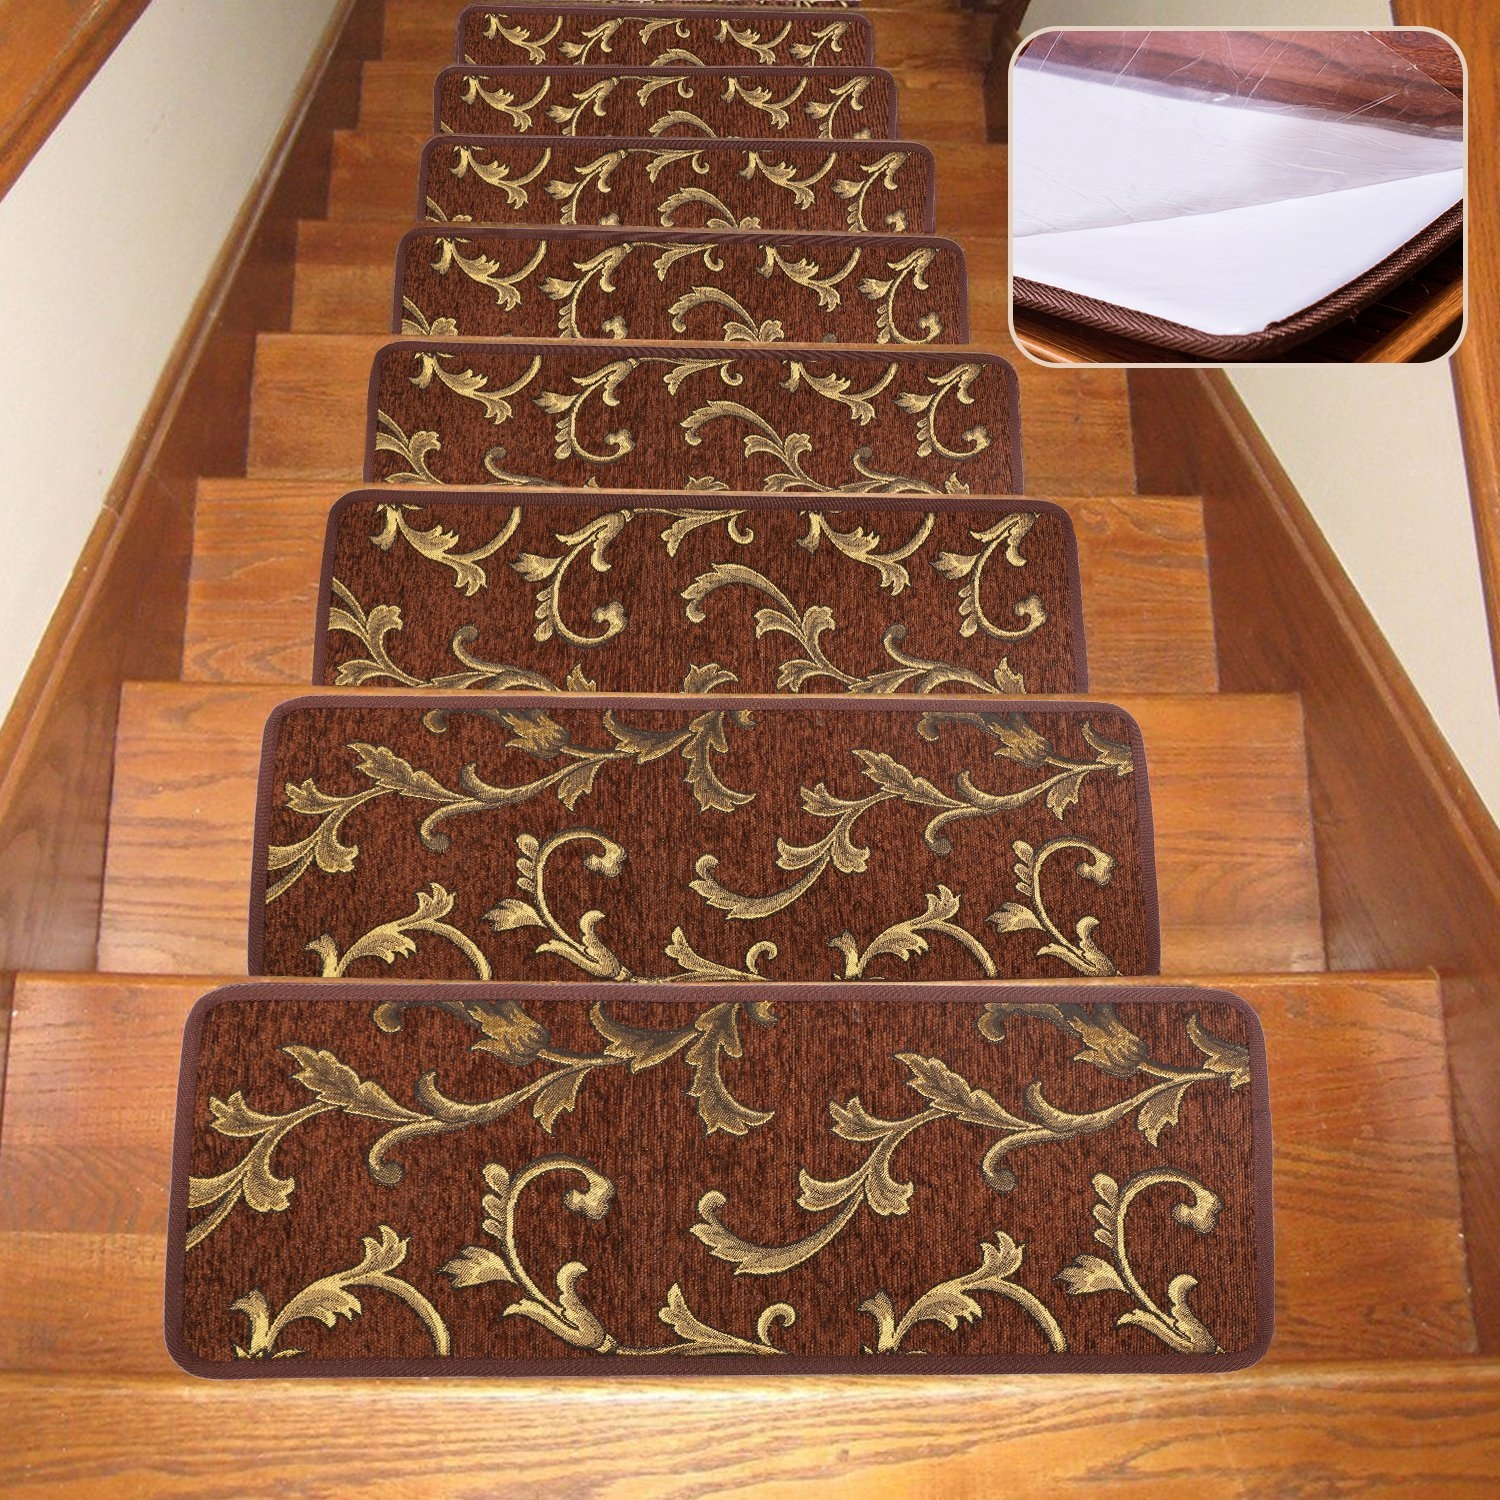 Soloom Non Slip Stair Treads Carpet Indoor Set Of 13 Blended Regarding NonSkid Solid StairTread Rugs (Image 12 of 15)